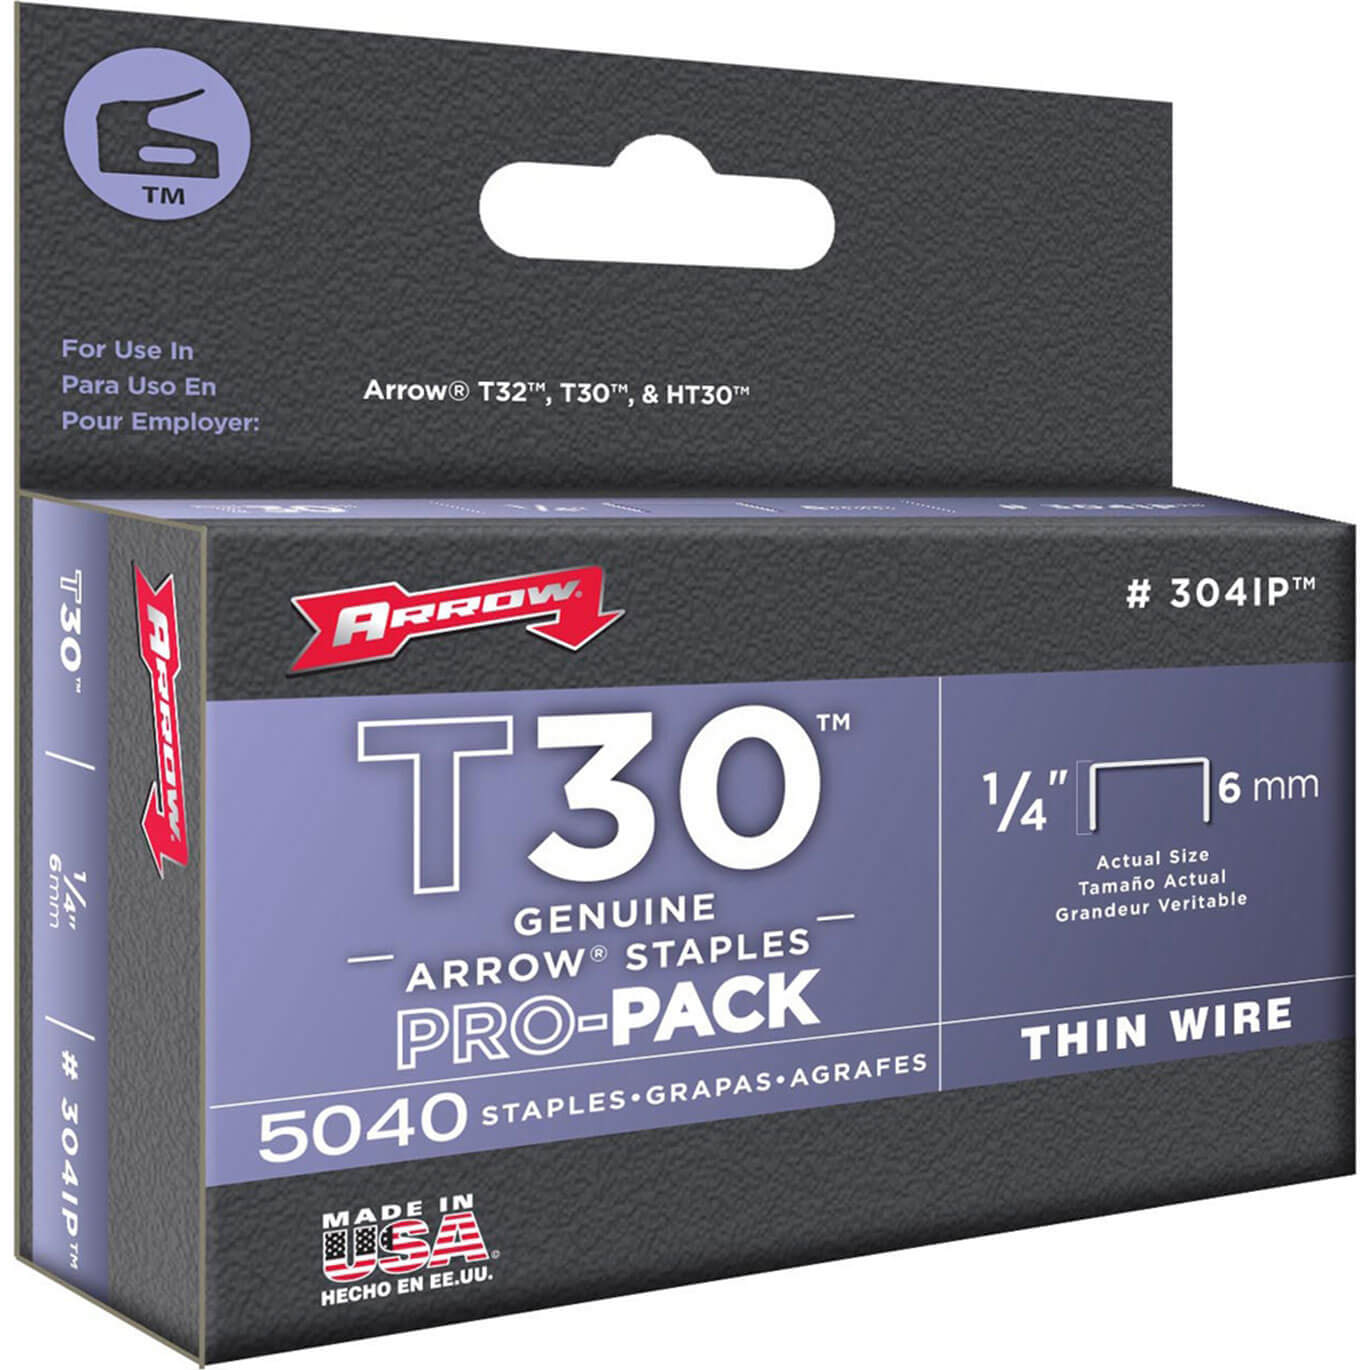 Arrow T30 Staples 6mm Pack of 5000